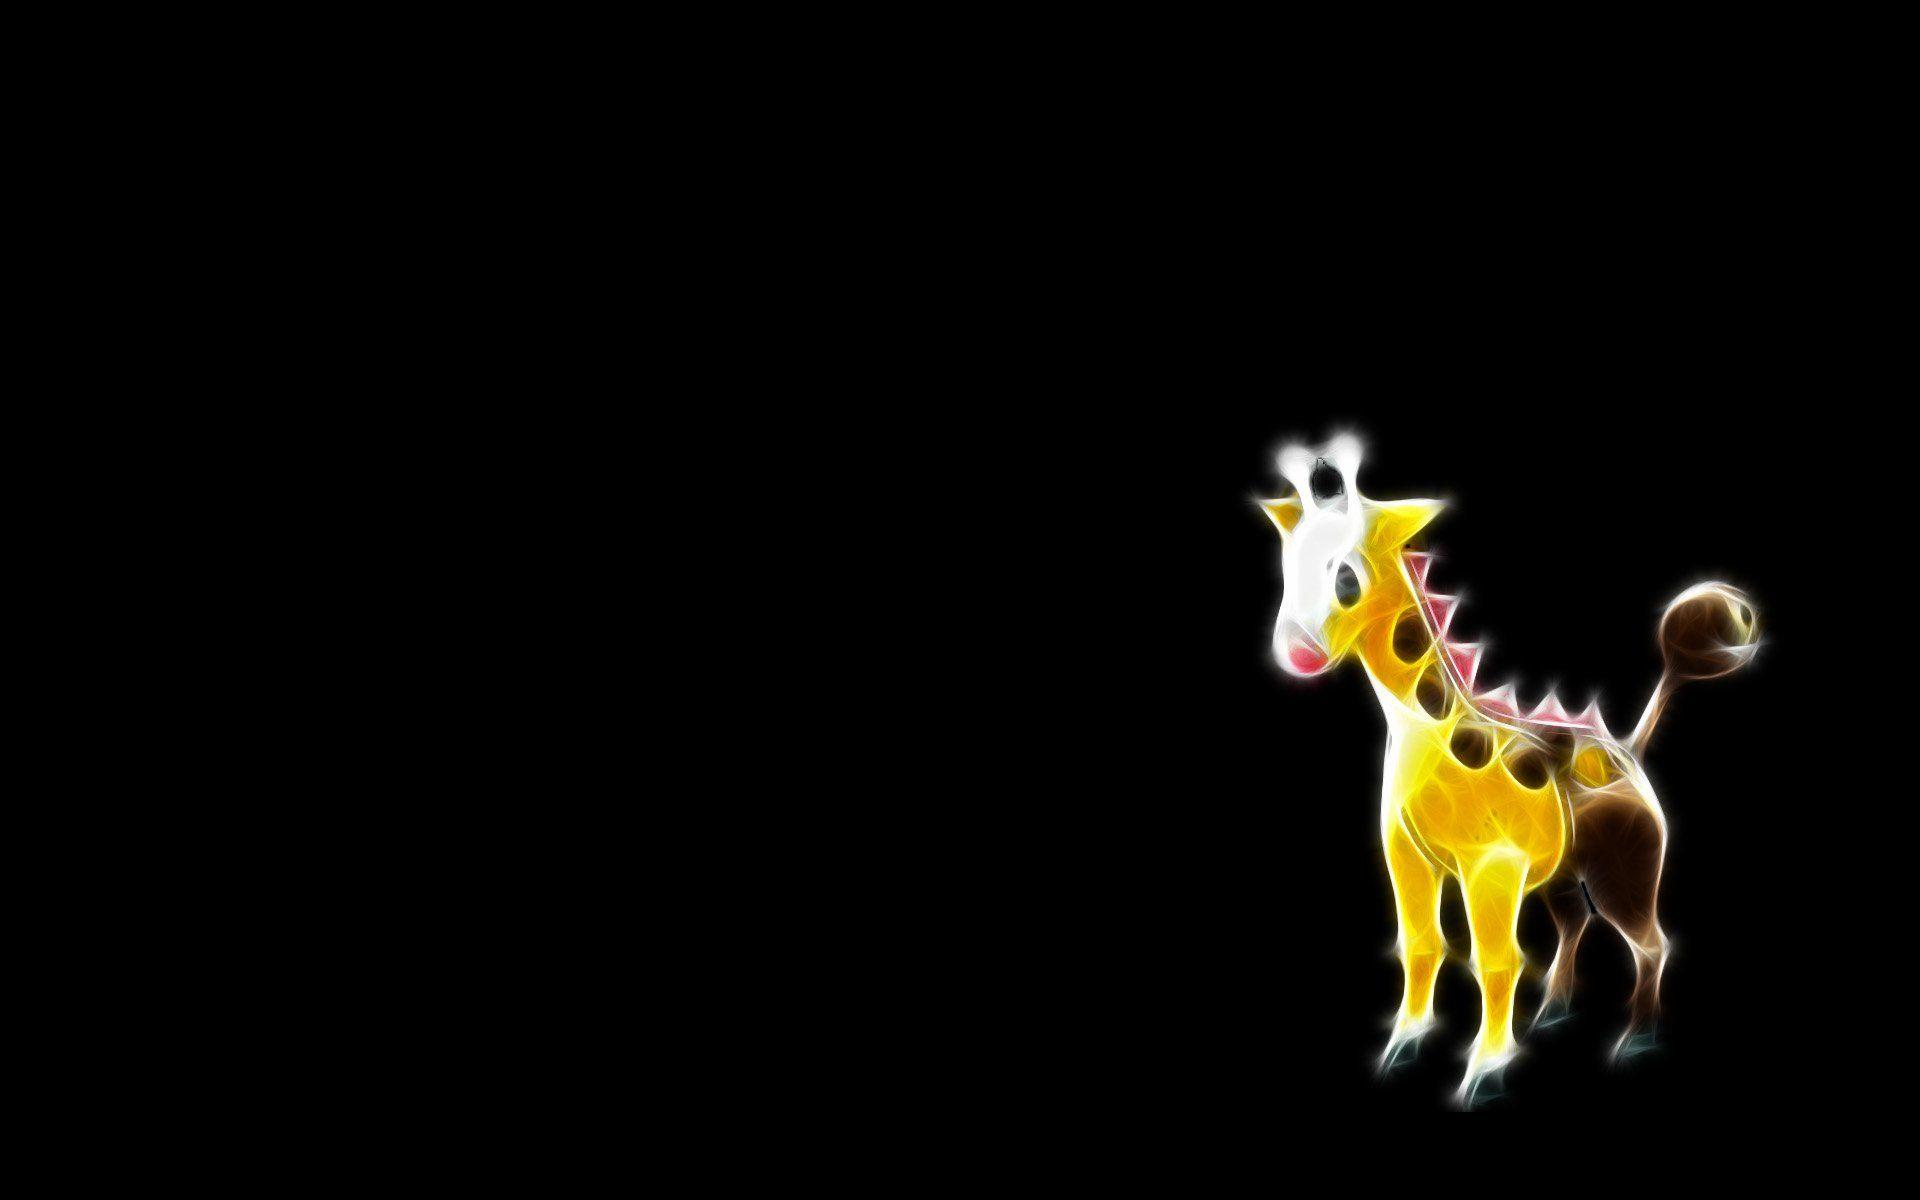 5 Girafarig (Pokémon) HD Wallpapers | Background Images ...